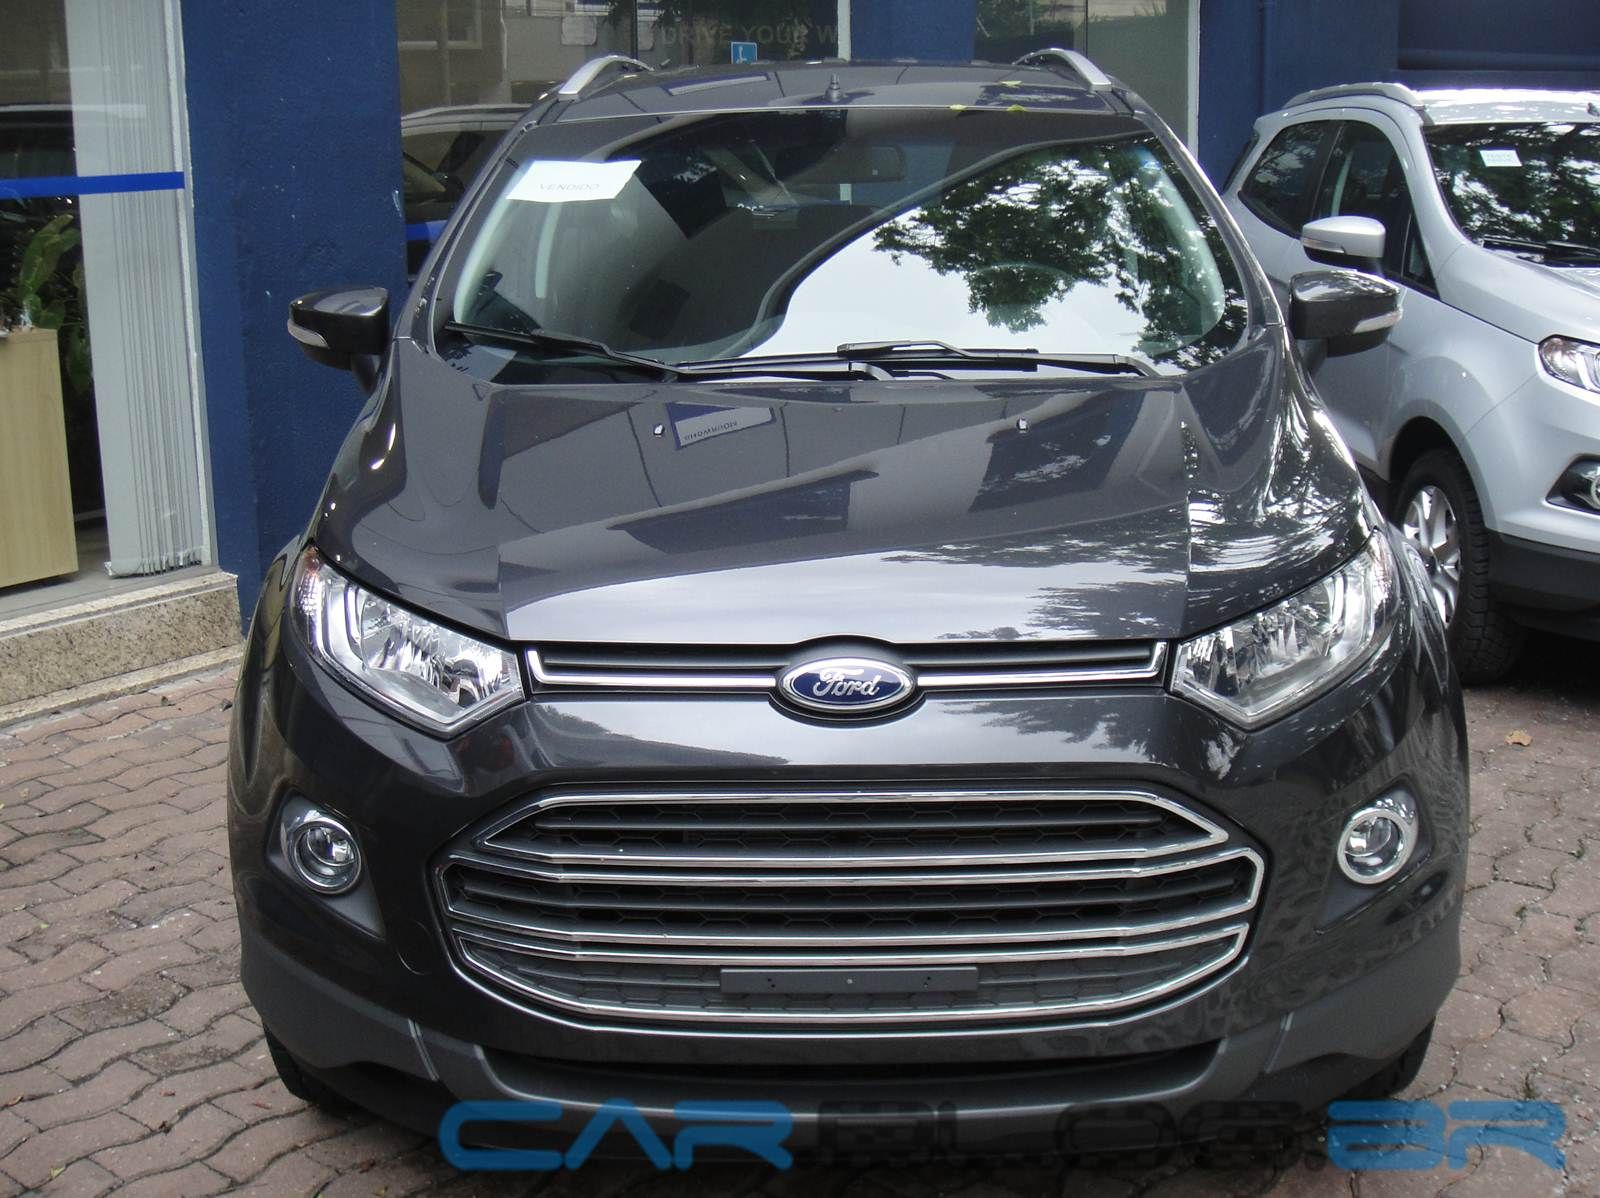 Ford EcoSport leva a em teste de longa duração | CAR.BLOG.BR on ford suv, ford flex, ford galaxy, ford mustang, ford fusion, ford mondeo, ford c-max, ford endeavour, ford econoline, ford explorer, ford edge, ford everest, ford ka, ford fiesta, ford excursion, ford figo, ford ranger, ford gt, ford focus, ford escape,